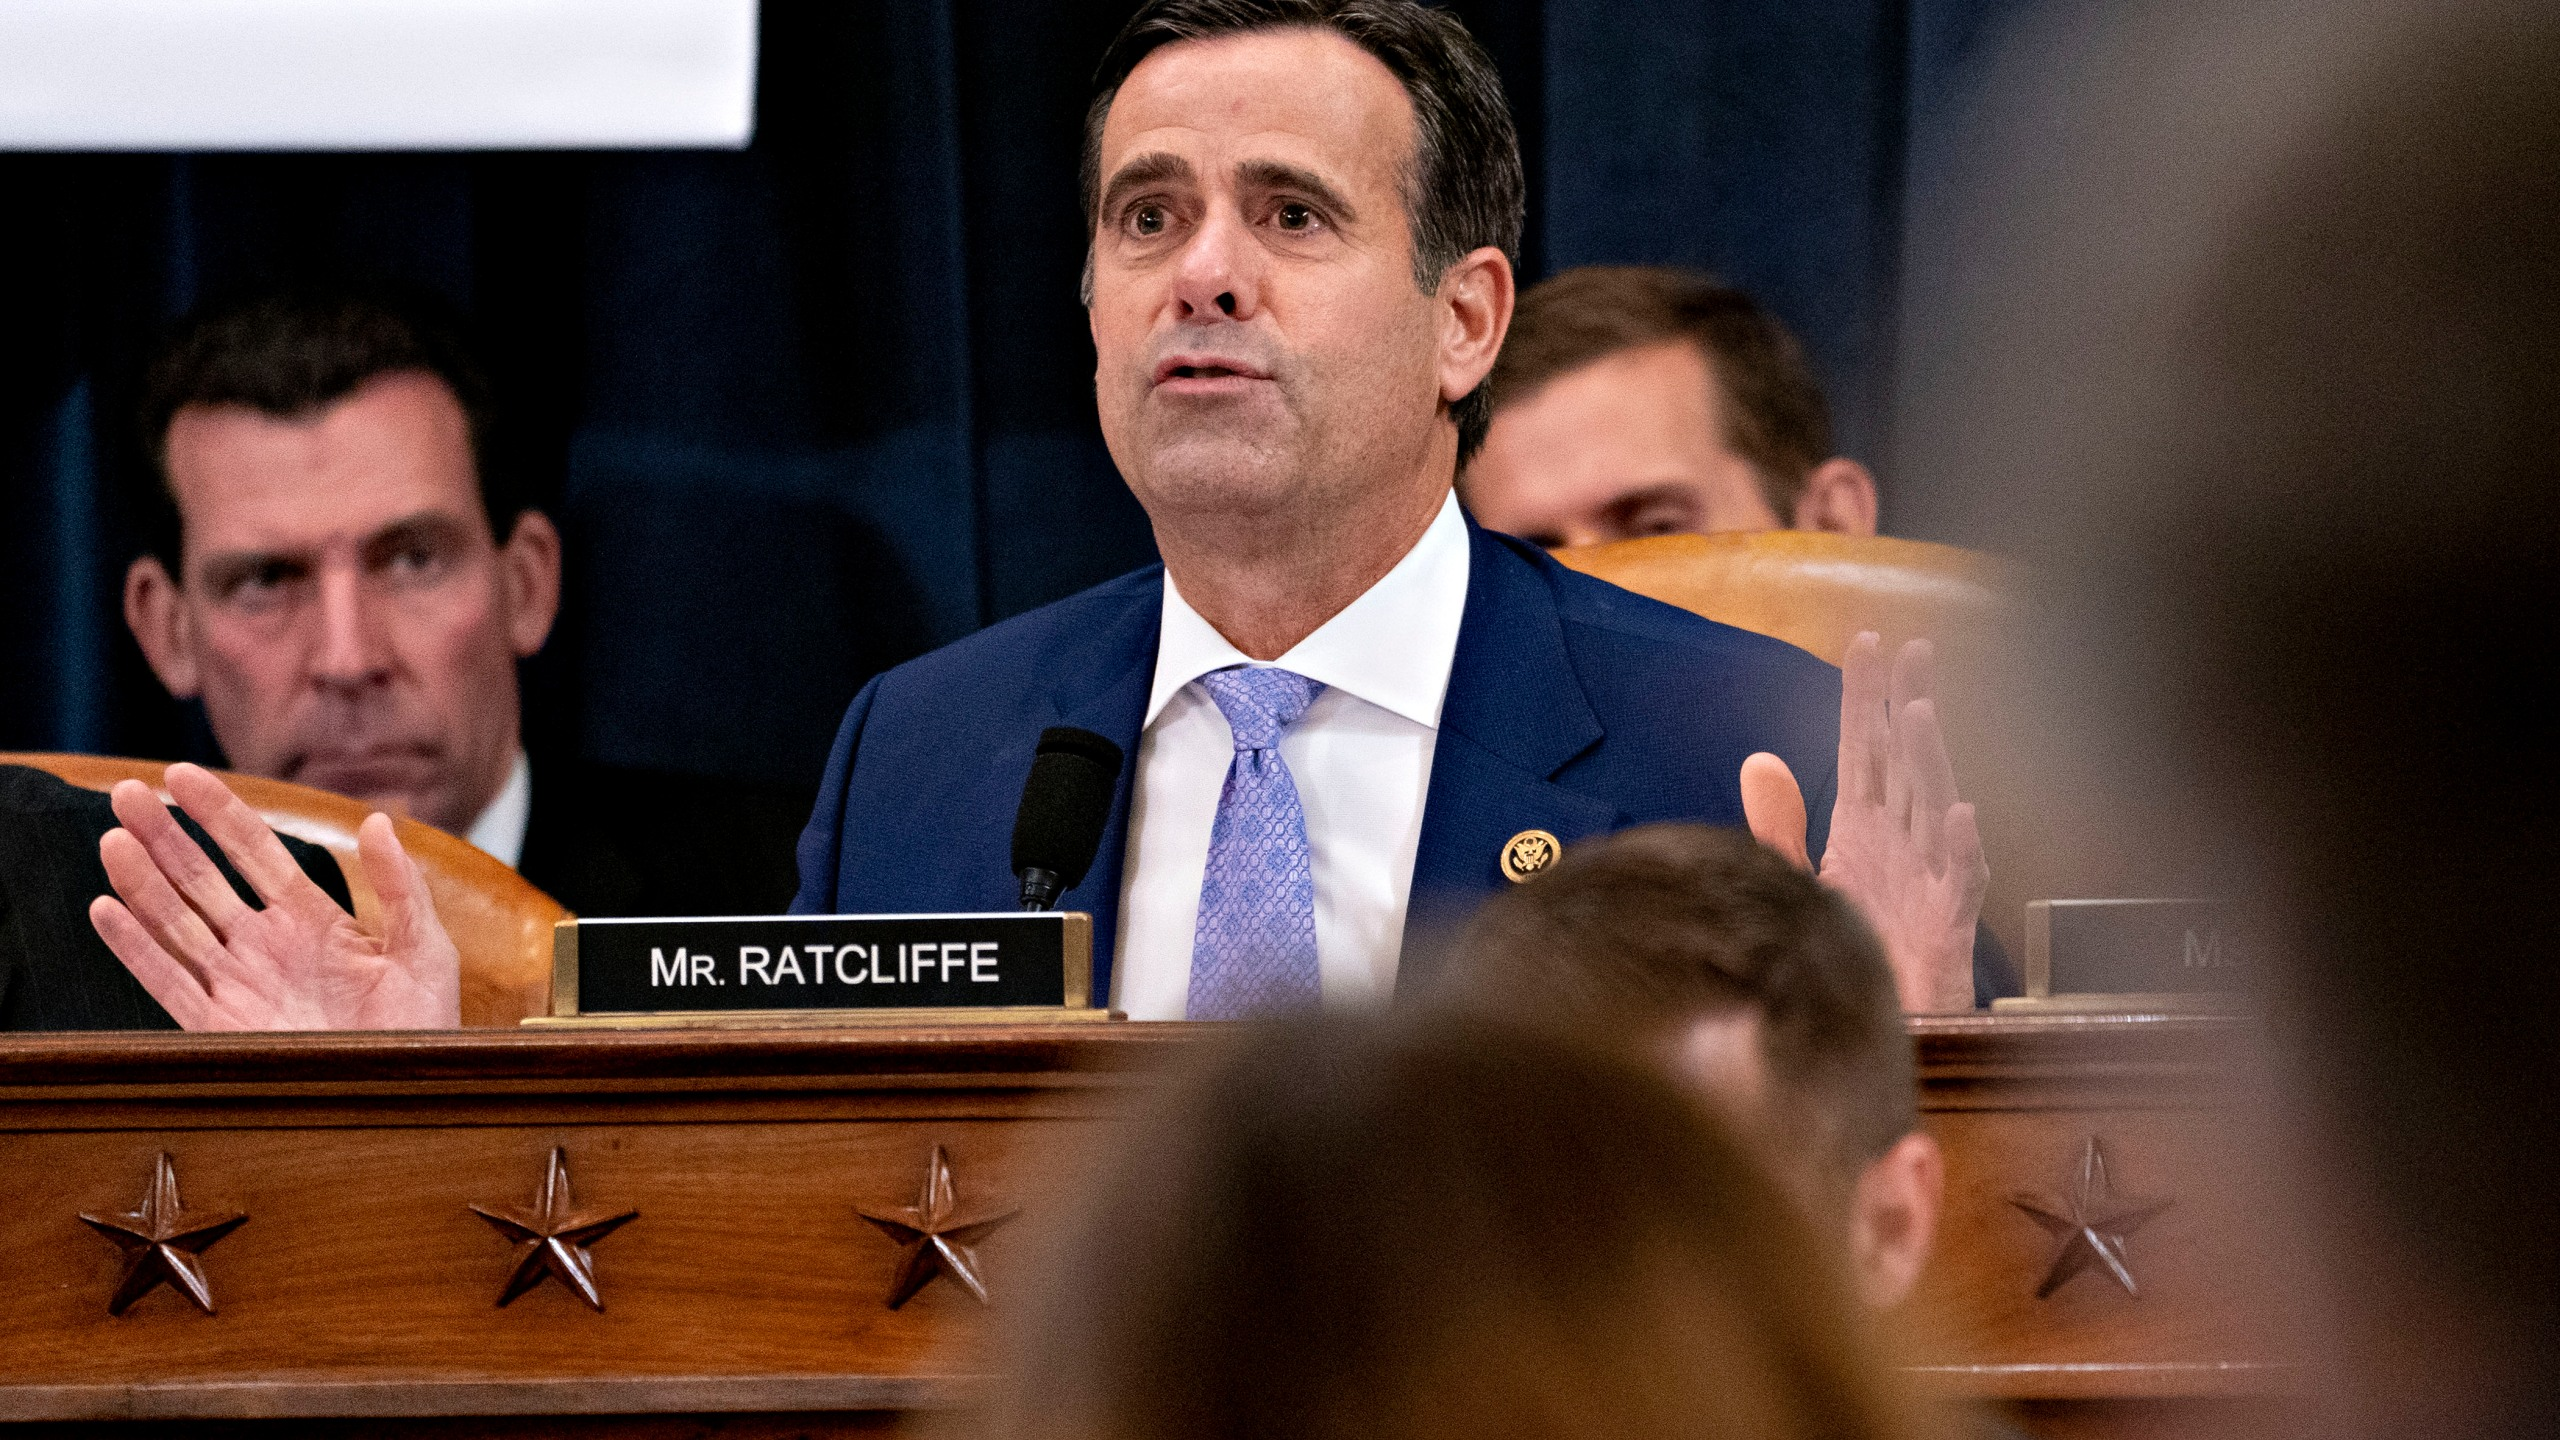 Rep. John Ratcliffe (R-TX) speaks during a House Judiciary Committee markup hearing on the Articles of Impeachment against President Donald Trump at the Longworth House Office Building on Thursday Dec. 12, 2019, in Washington, D.C. (Andrew Harrer - Pool/Getty Images)